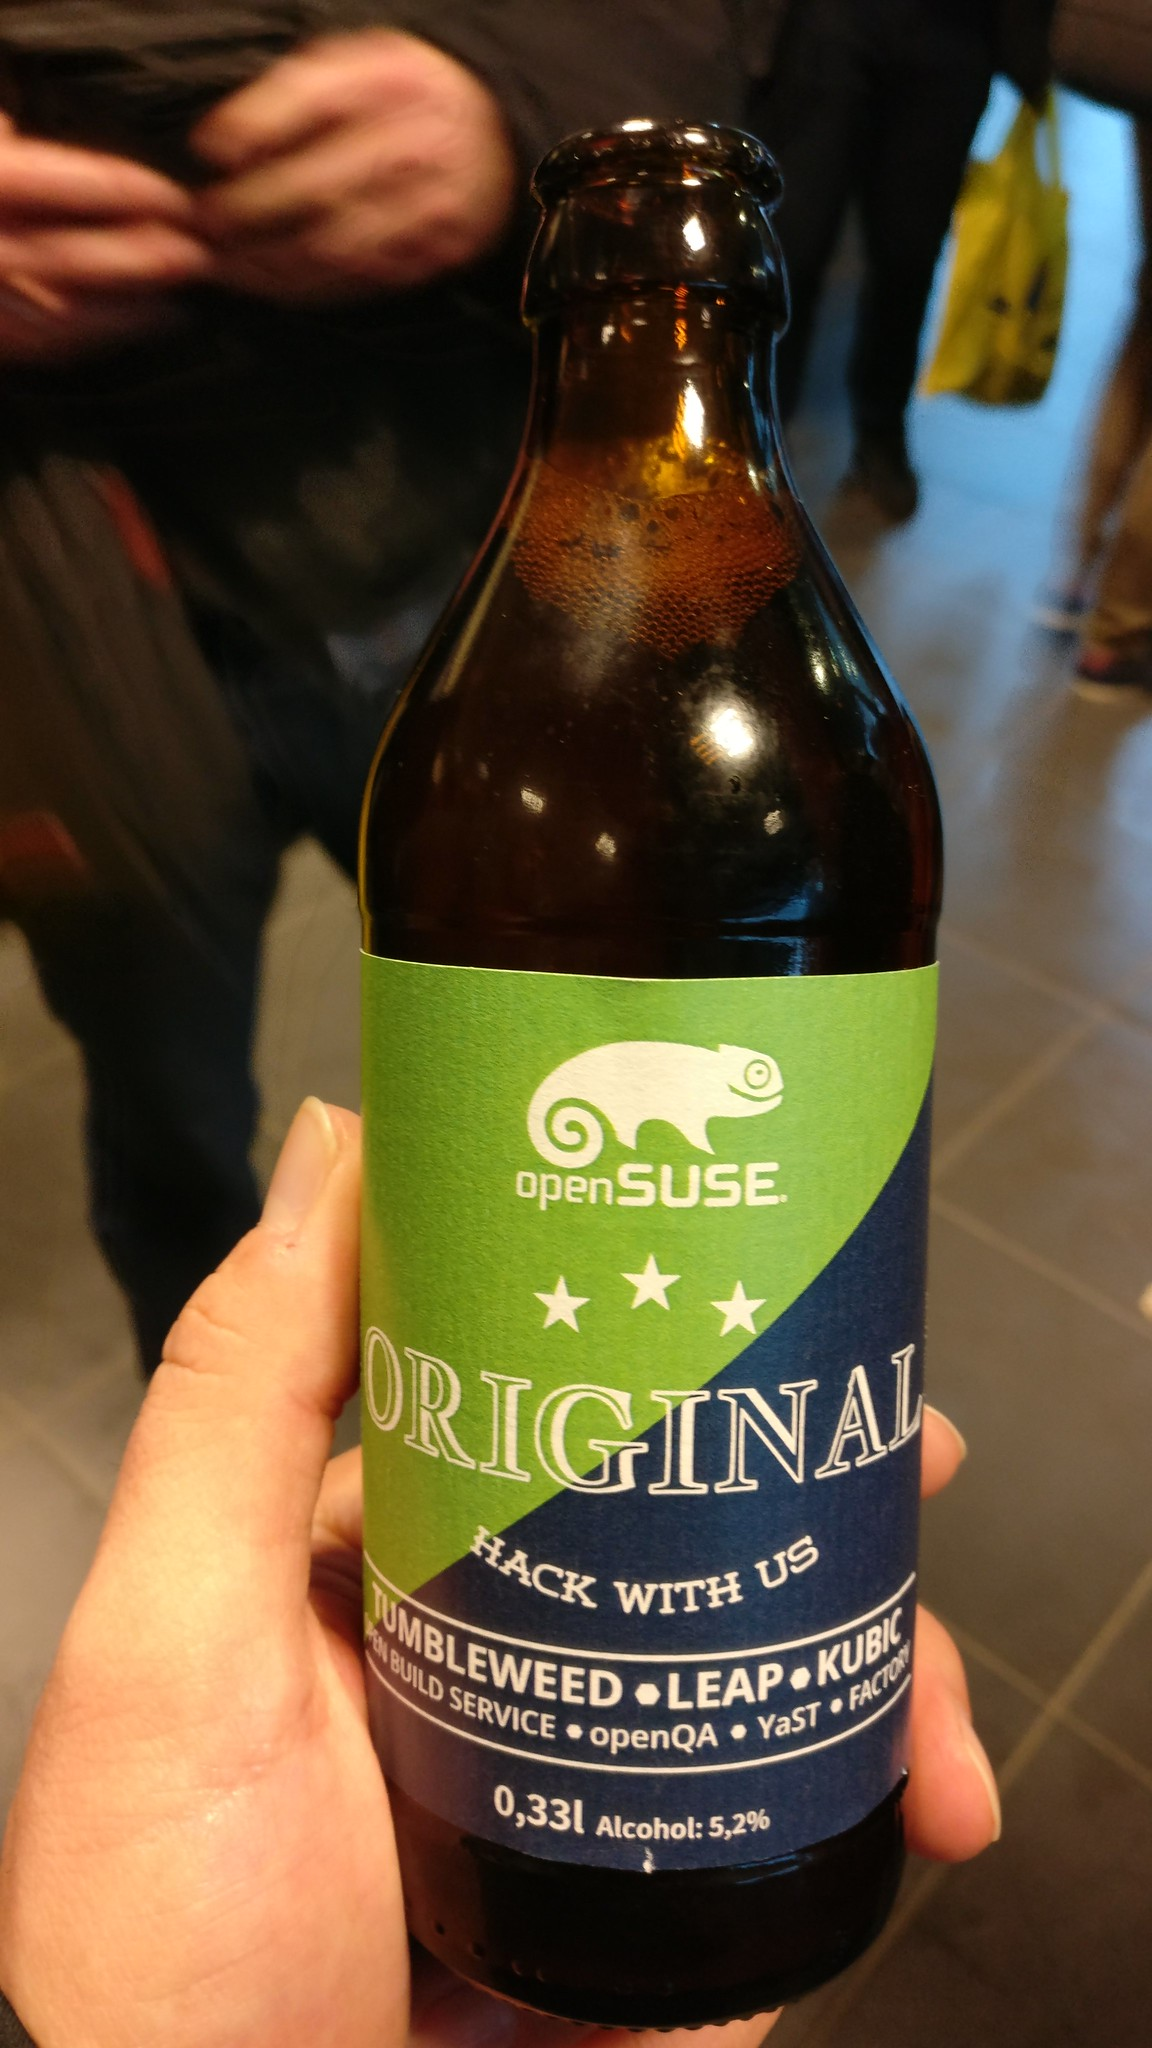 The classic OpenSUSE beer